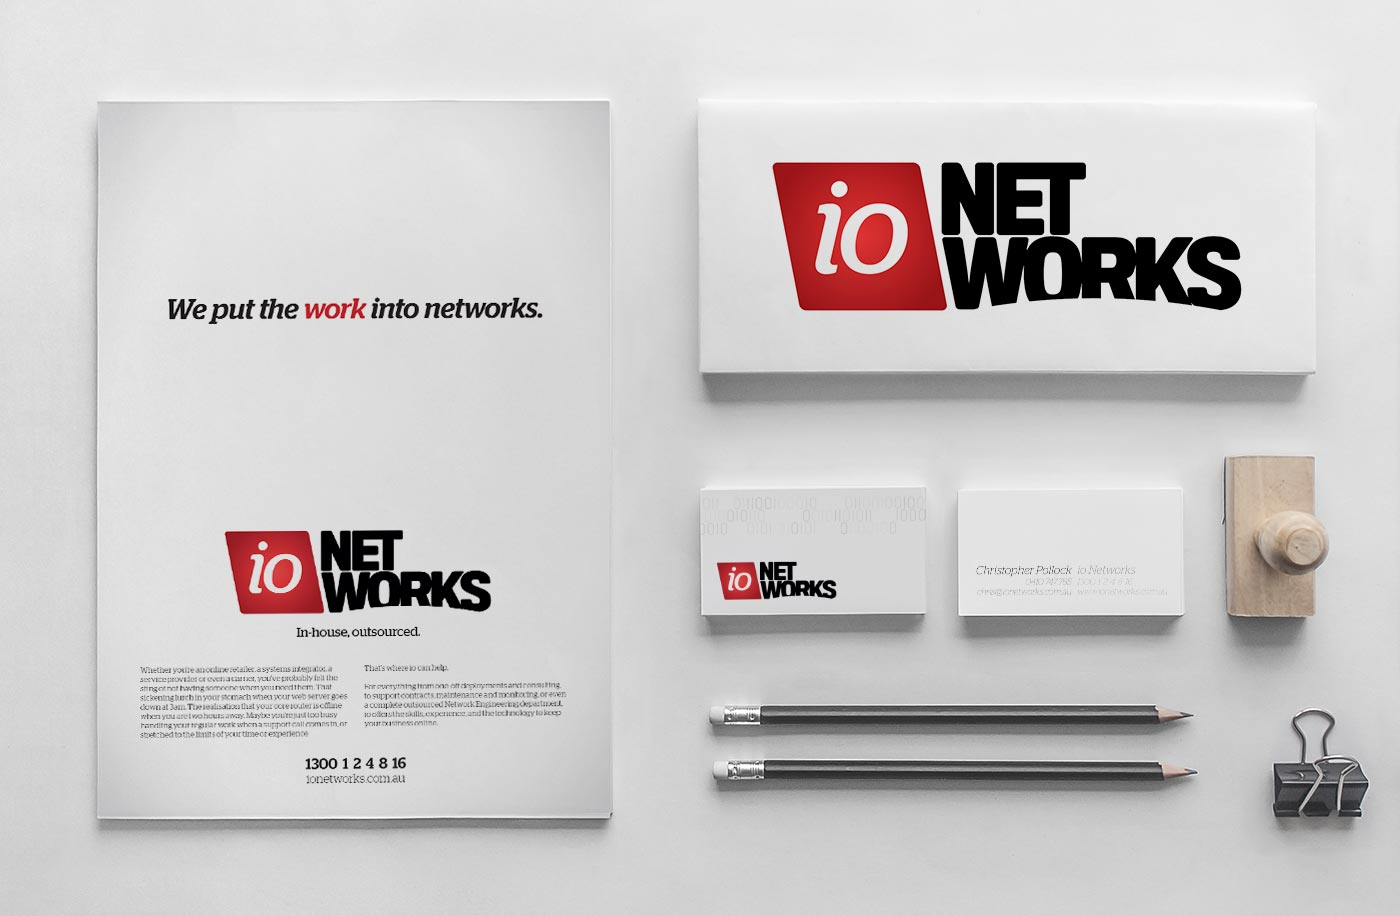 ionetworks